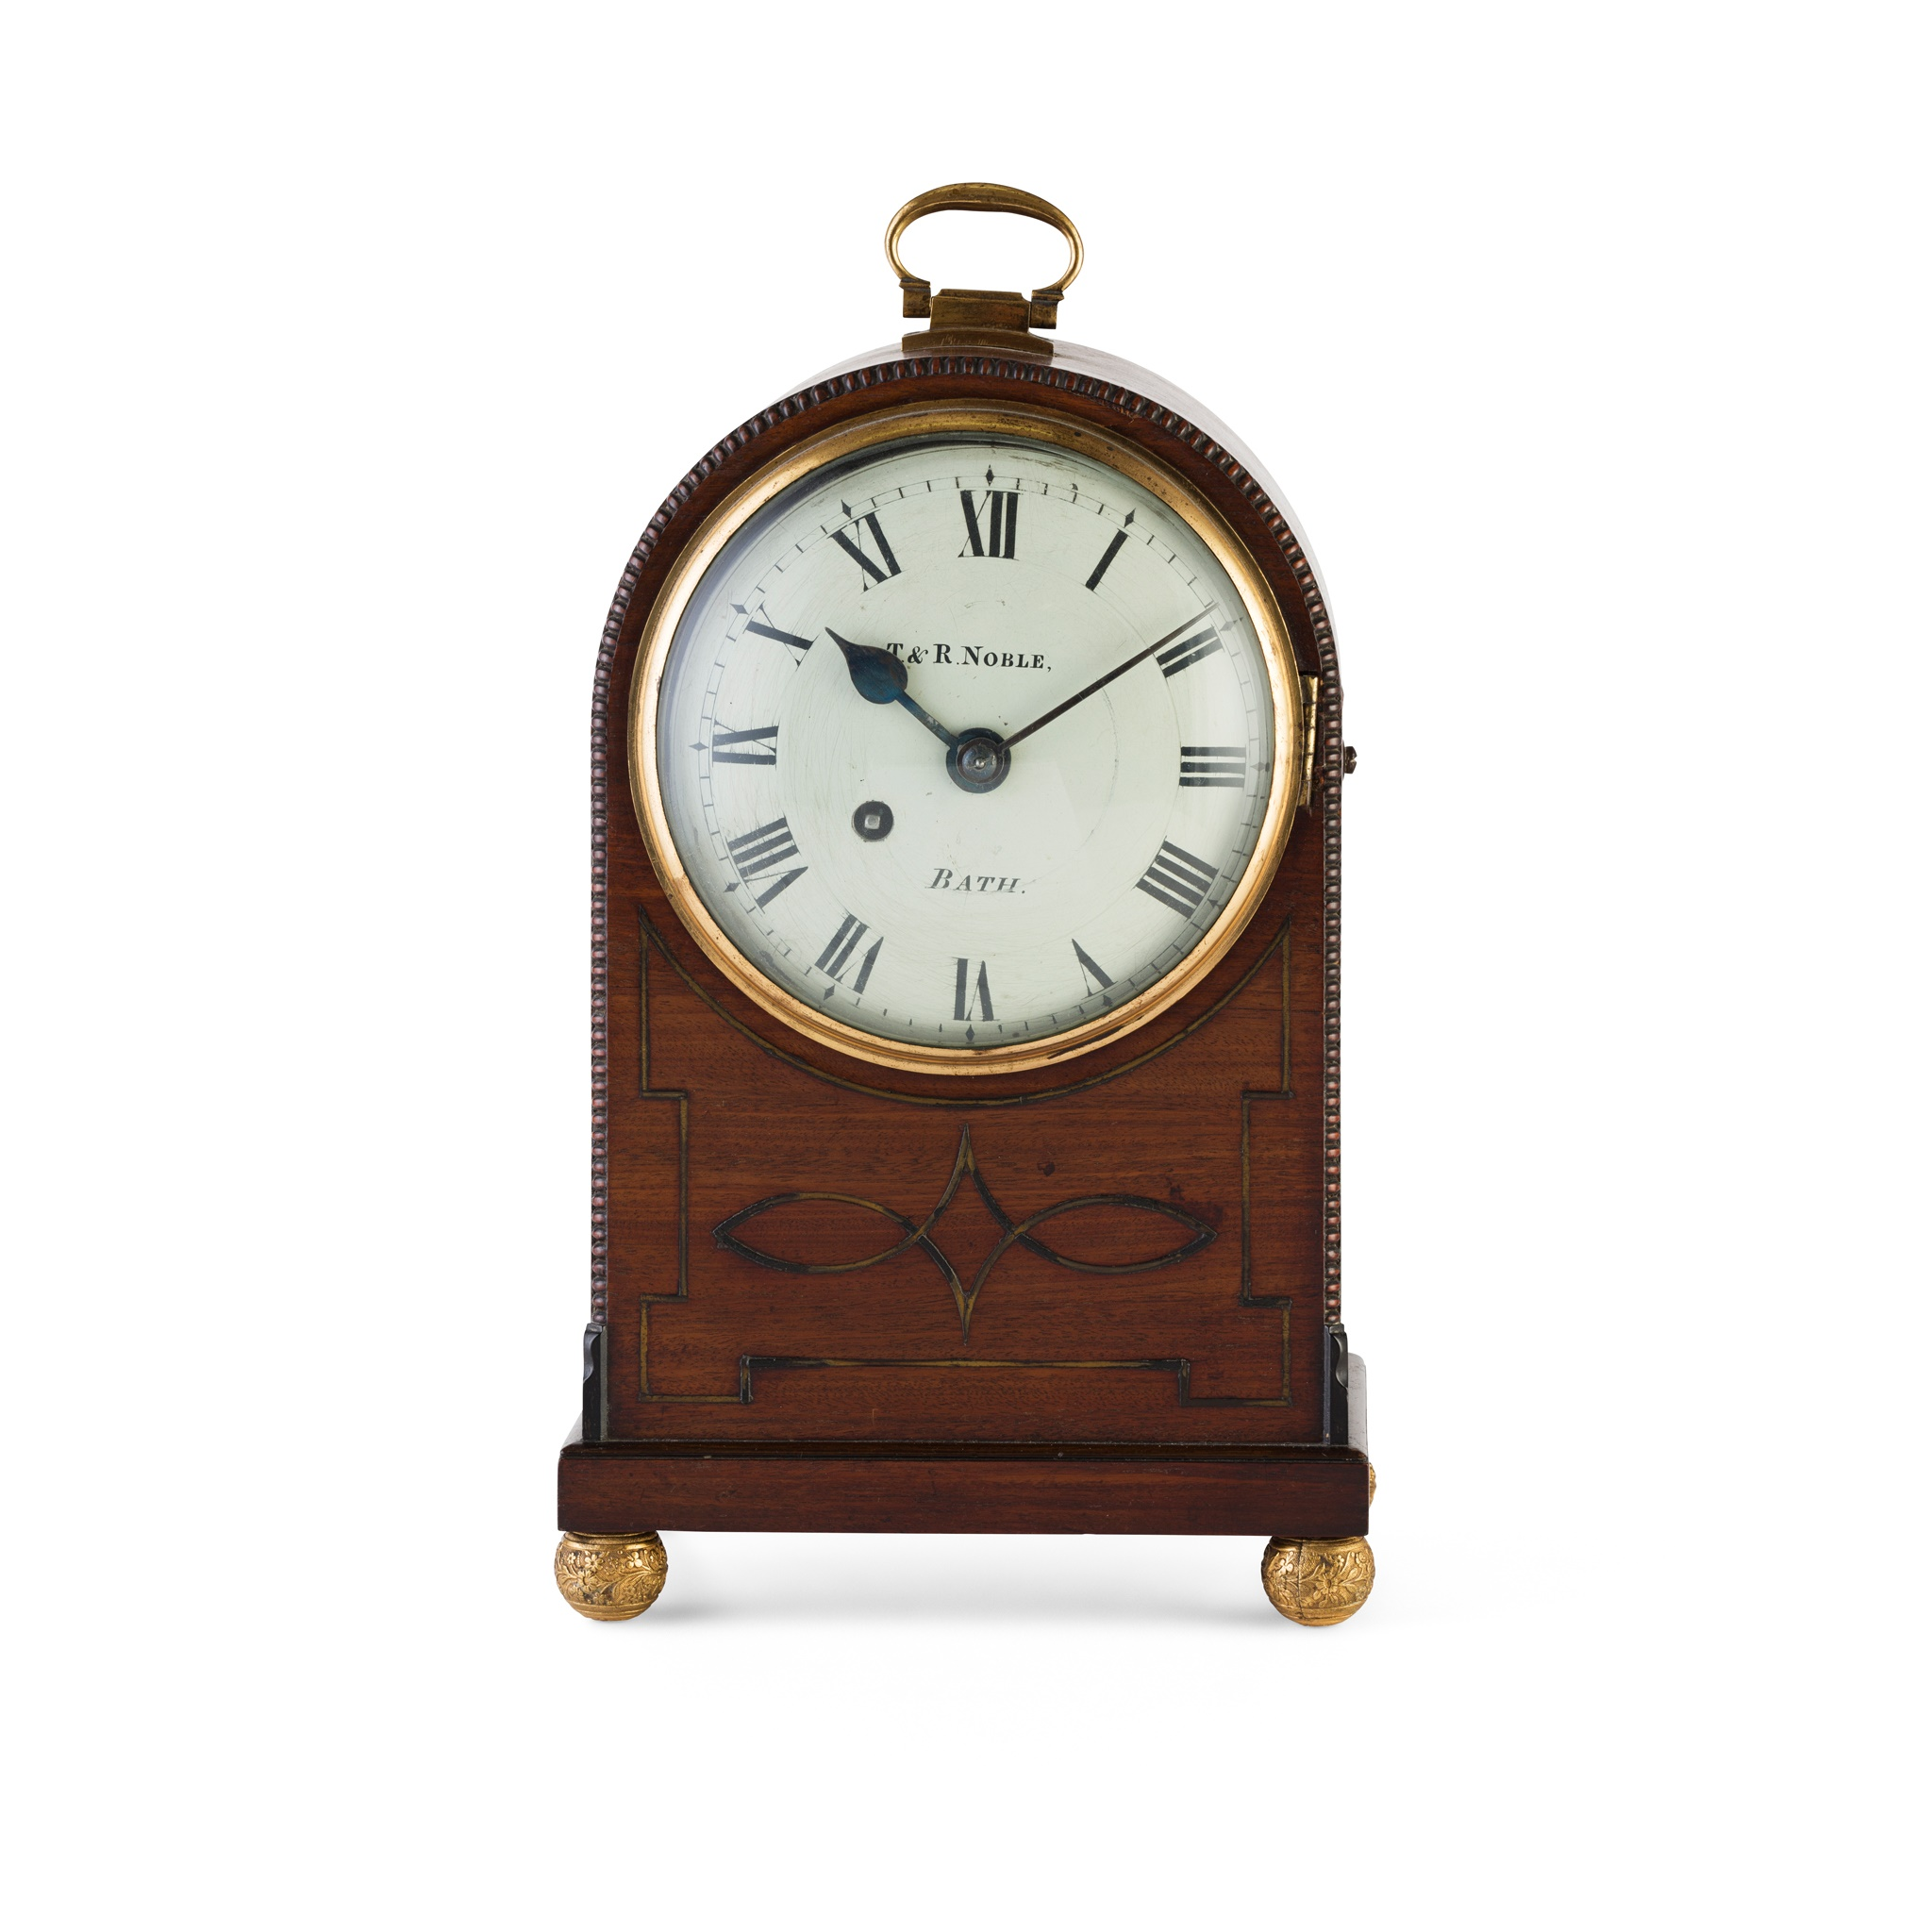 REGENCY MAHOGANY BRASS INLAID MANTLE CLOCK, T & R NOBLE, BATH EARLY 19TH CENTURY - Image 2 of 2